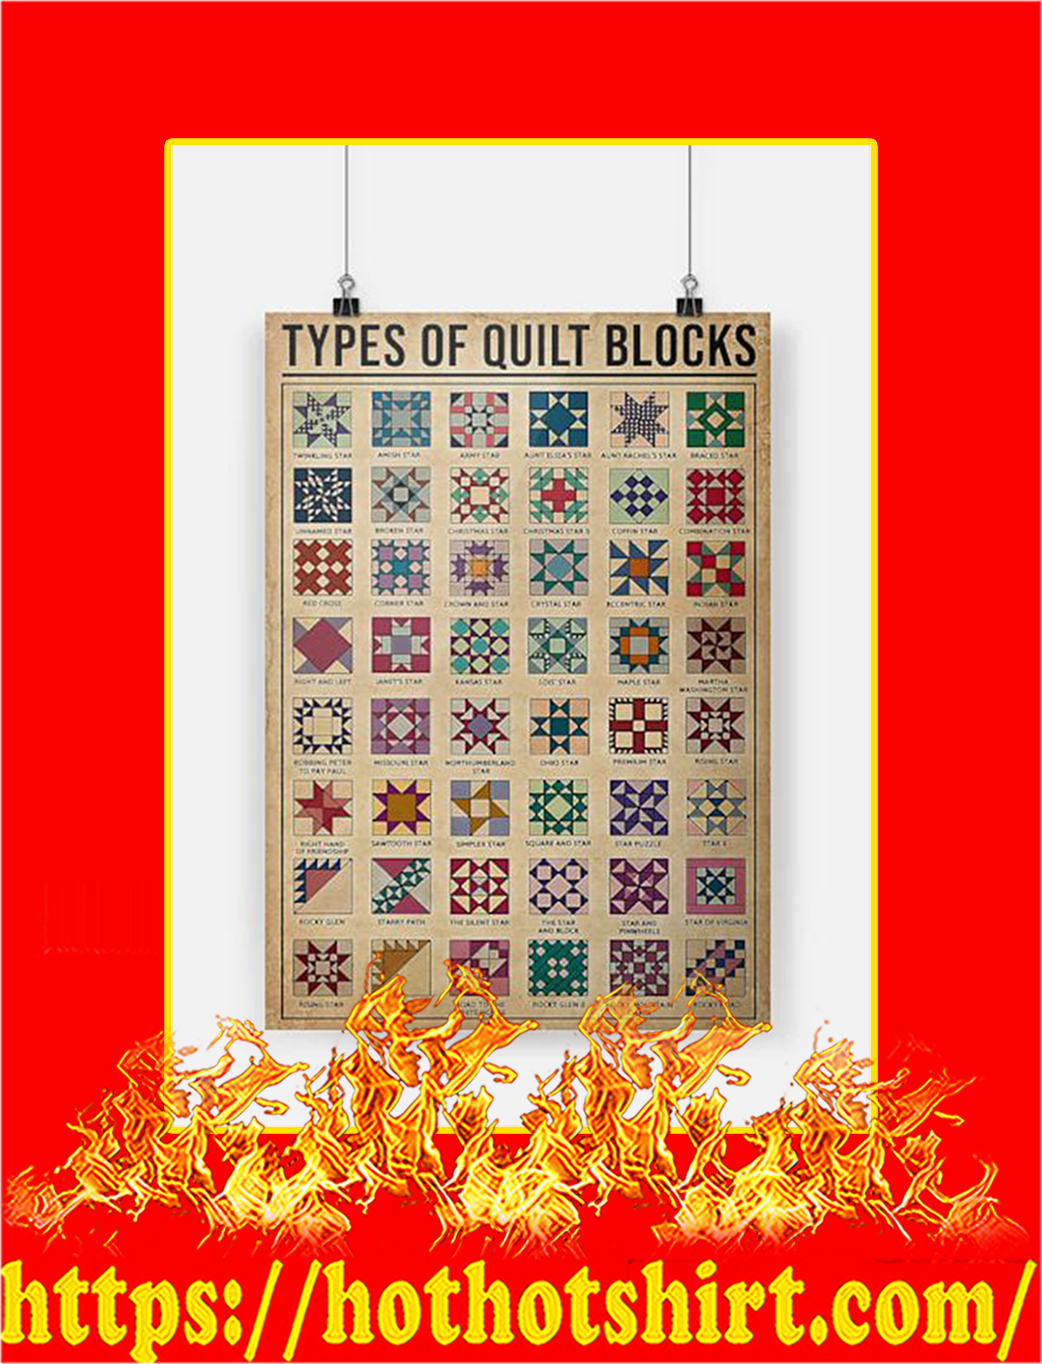 Types Of Quilt Blocks Poster - A2